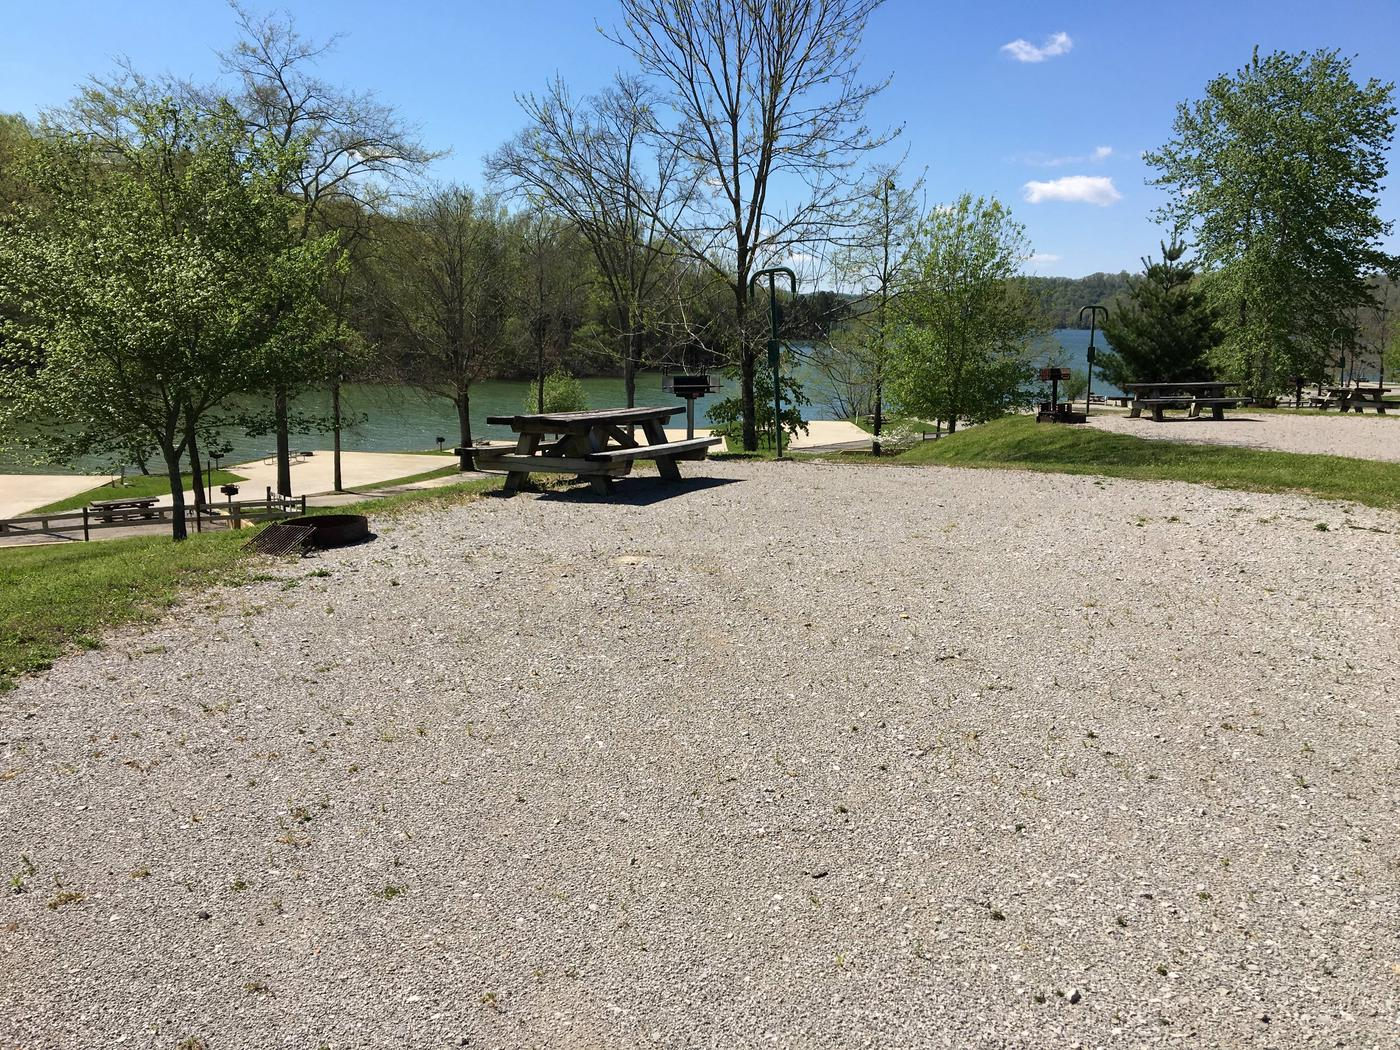 LILLYDALE CAMPGROUND SITE # 98 MID SITE VIEW WITH LAKE IN BACKGROUNDLILLYDALE CAMPGROUND SITE # 98